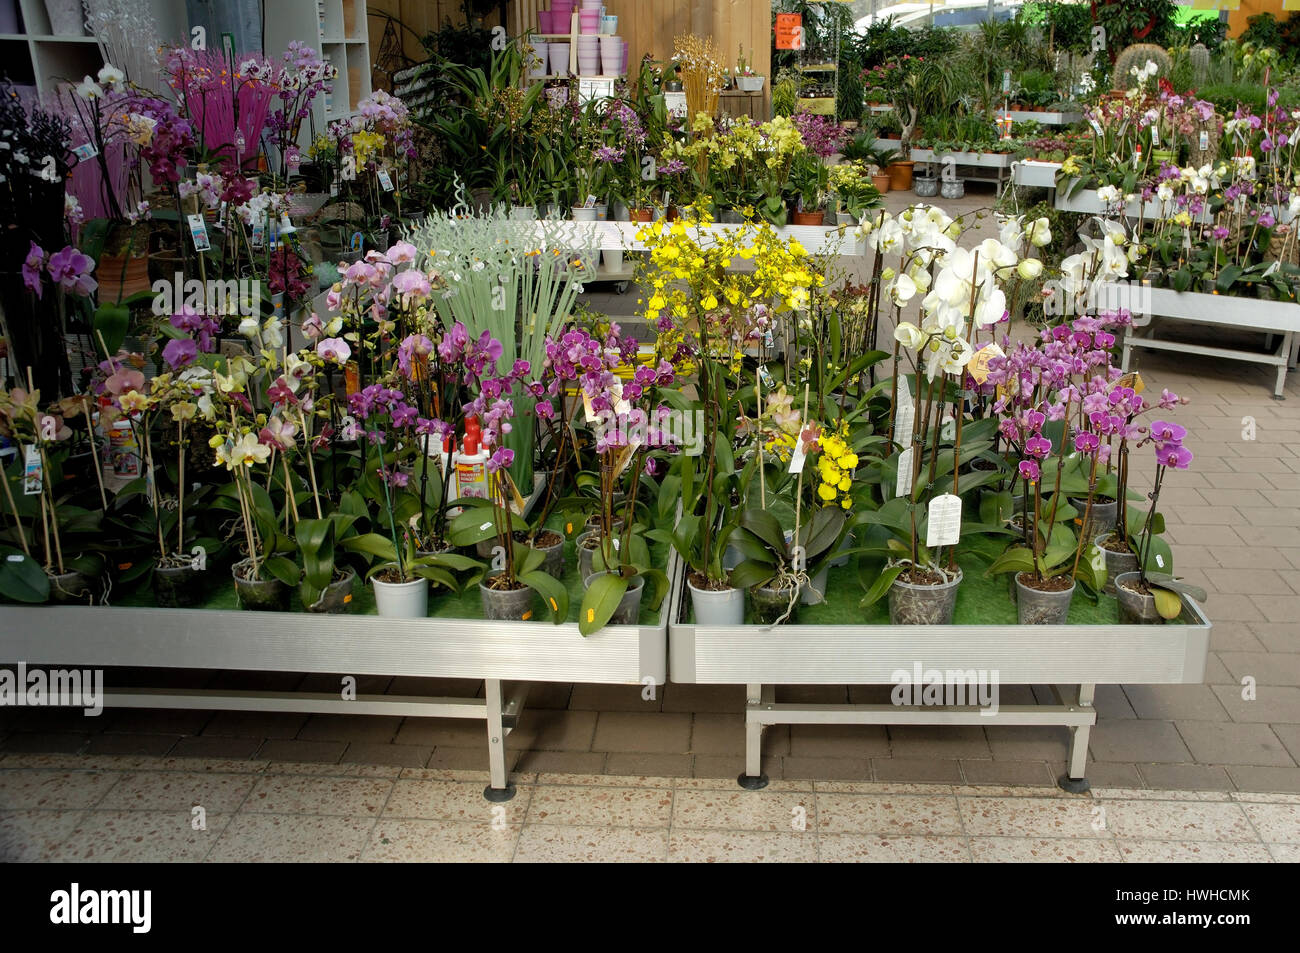 Nursery with orchid, garden centre orchids in a market garden, Nursery with orchid | Gartencenter / Orchideen in - Stock Image